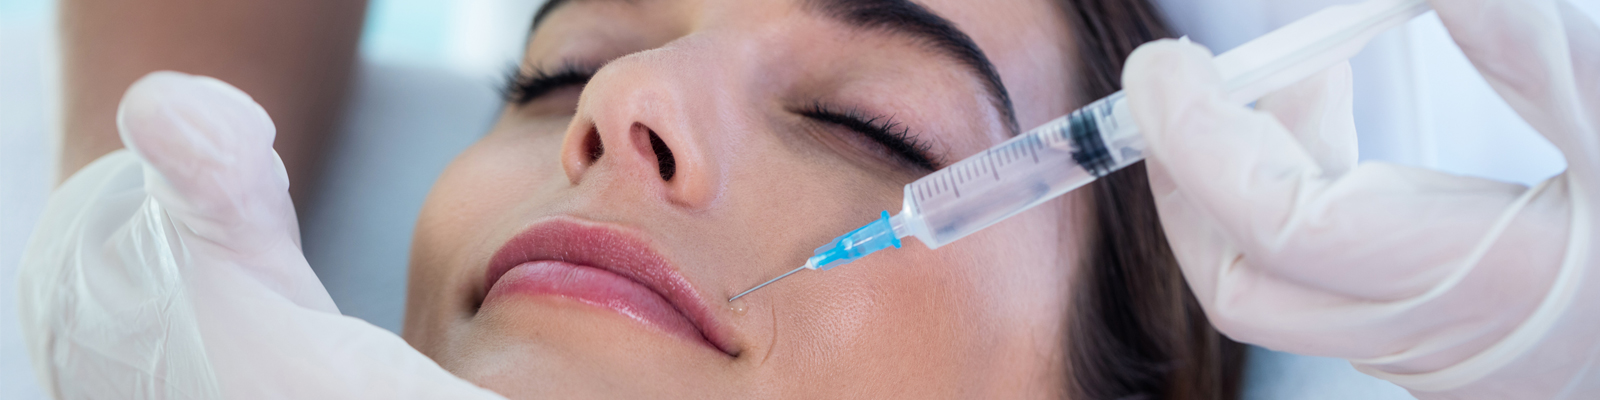 Woman having injection treatment